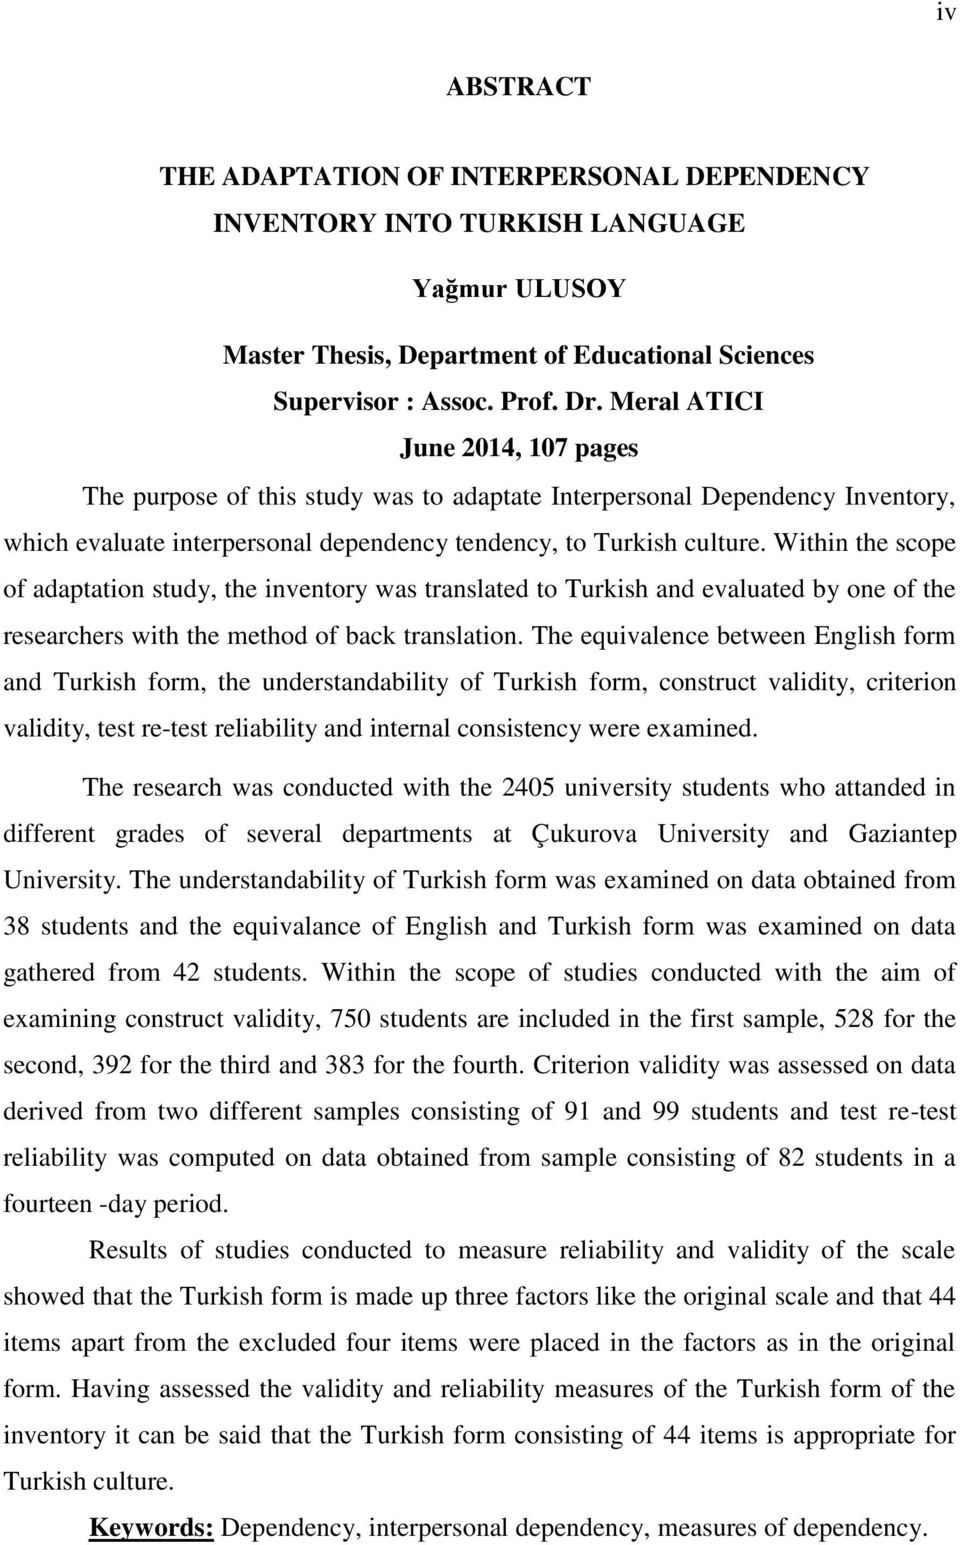 Within the scope of adaptation study, the inventory was translated to Turkish and evaluated by one of the researchers with the method of back translation.